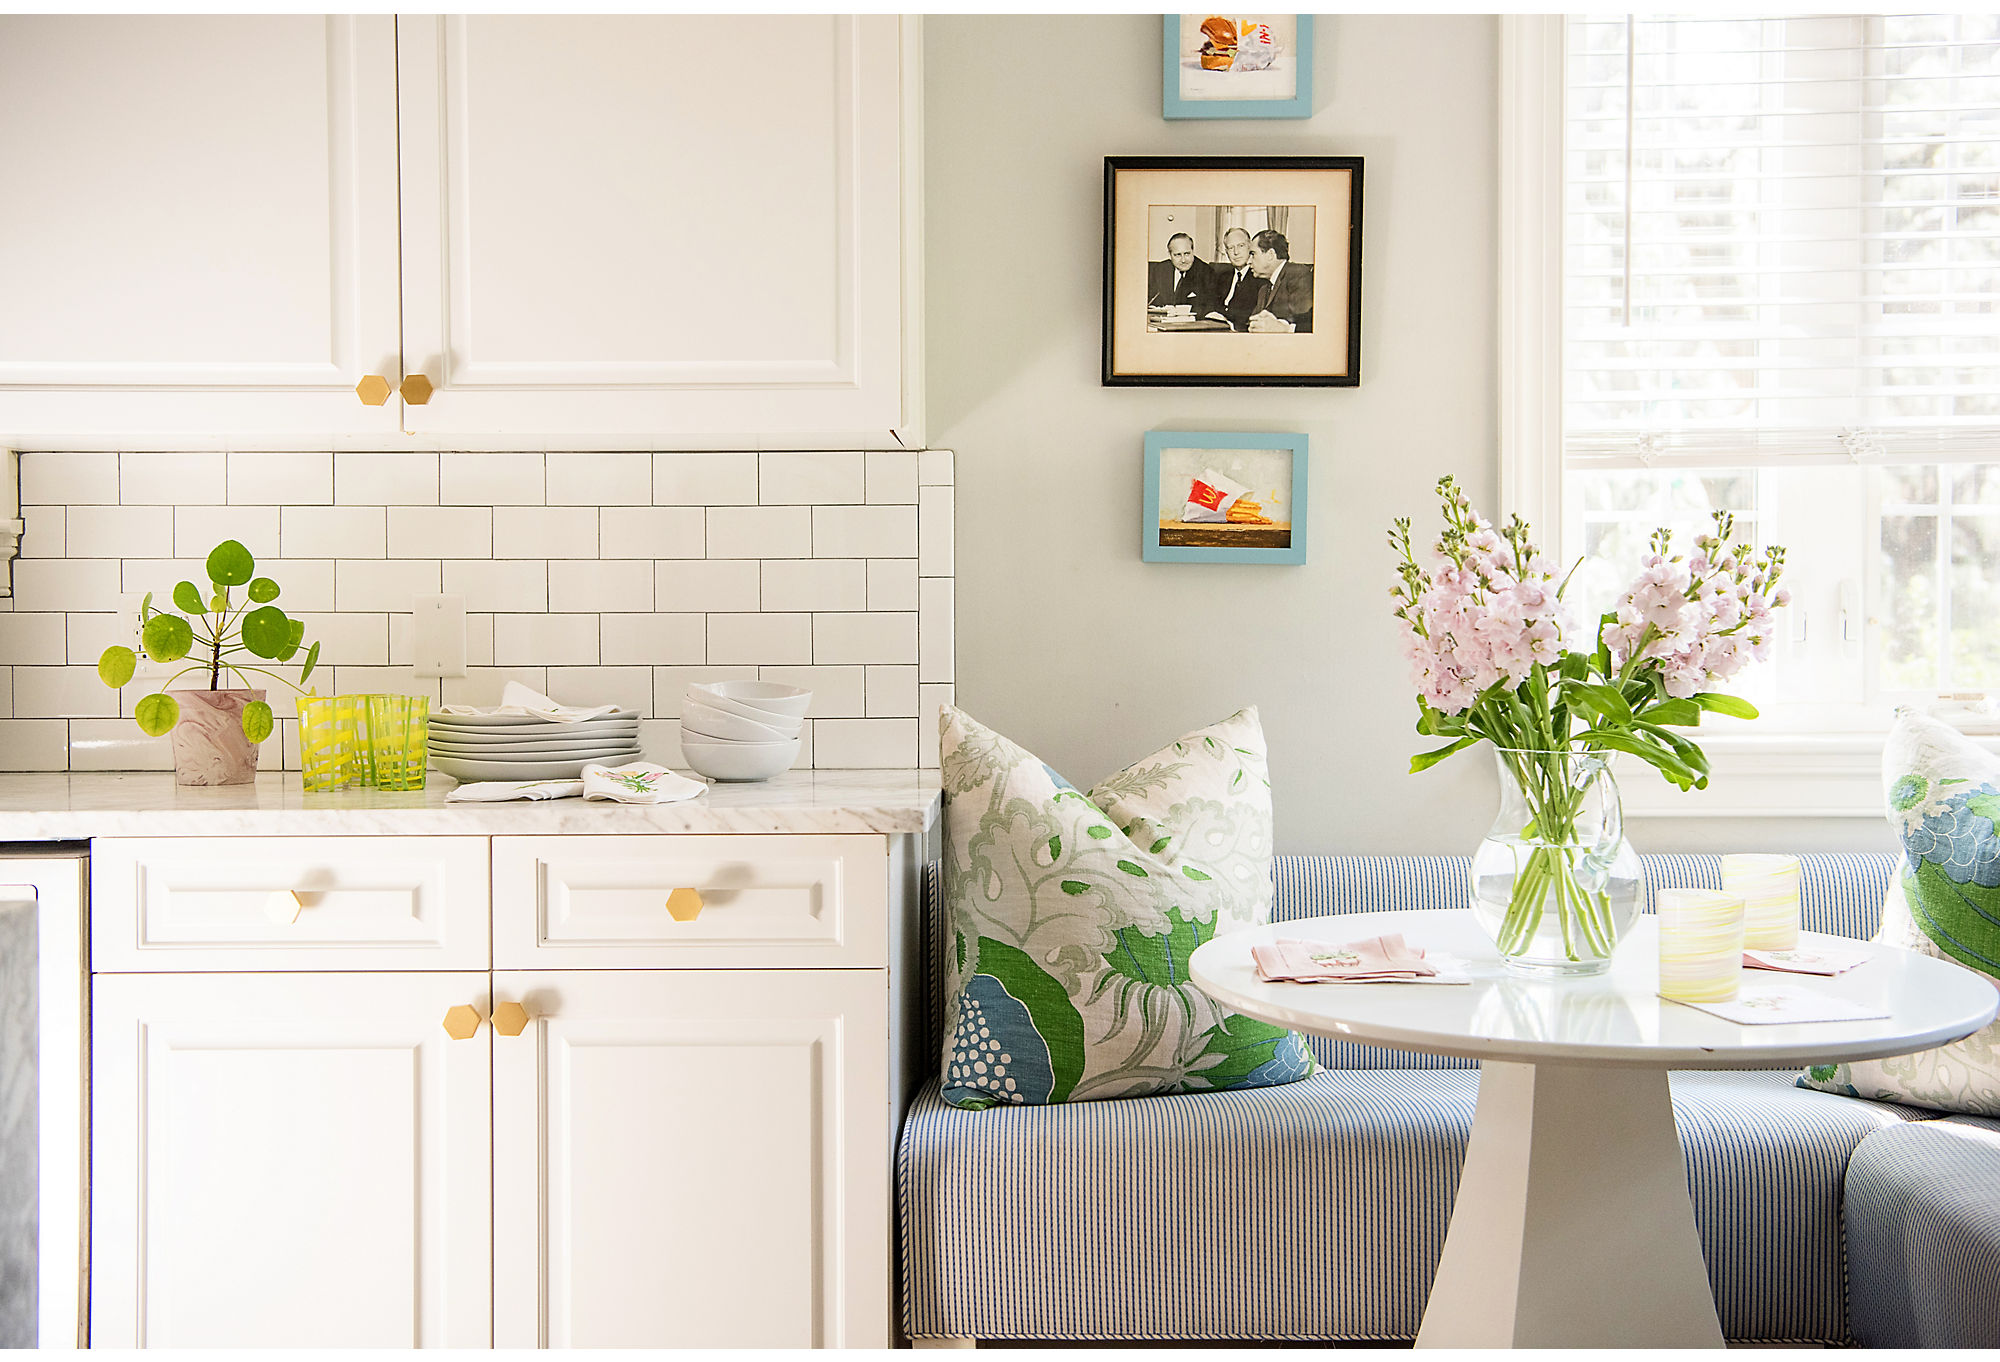 """The kitchen is smaller than Courtland would like, but that doesn't mean she and her family avoid it. """"We spend most of our time in that room. Stanley Steemer comes to clean a lot,"""" she says with a laugh."""